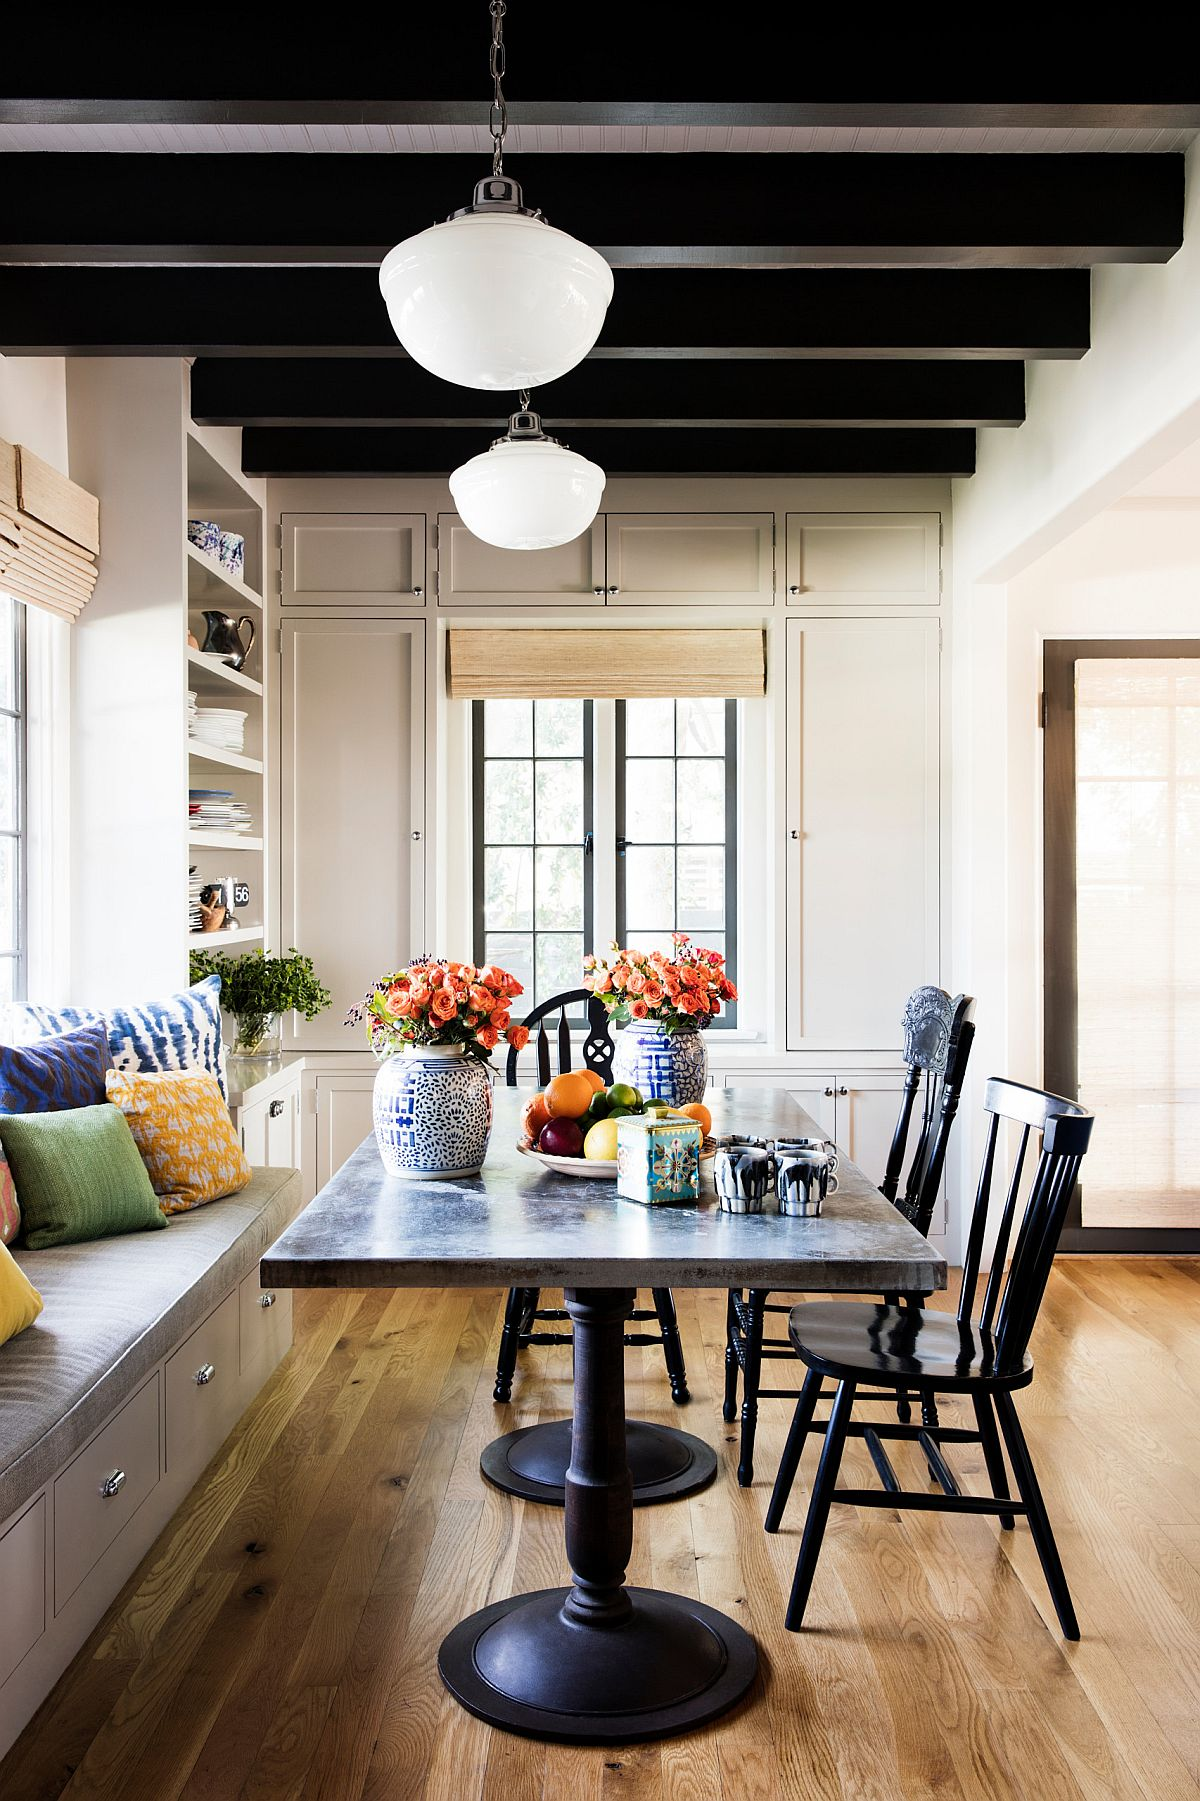 Dark-ceiling-beams-custom-built-in-bench-with-storage-and-large-windows-give-this-dining-space-a-modern-Mediterranean-vibe-70924